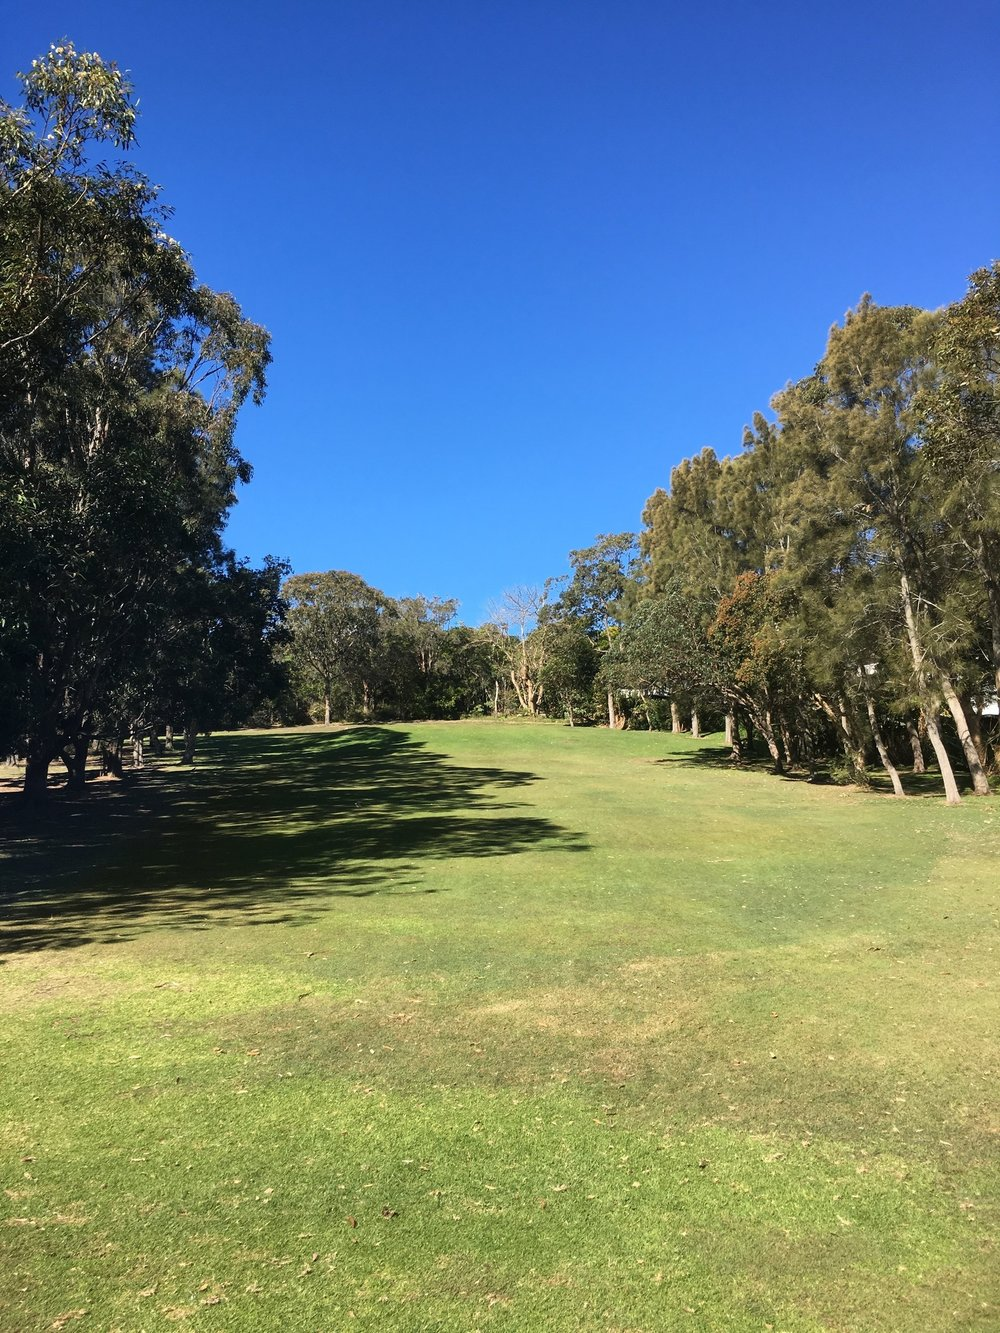 Hole Five - PAR 3 - 96 metresAlthough a short hole, any shot failing to make the green will role 30 metres back towards the tee from the slope. Club selection is paramount so heed any lessons learned from the last hole.